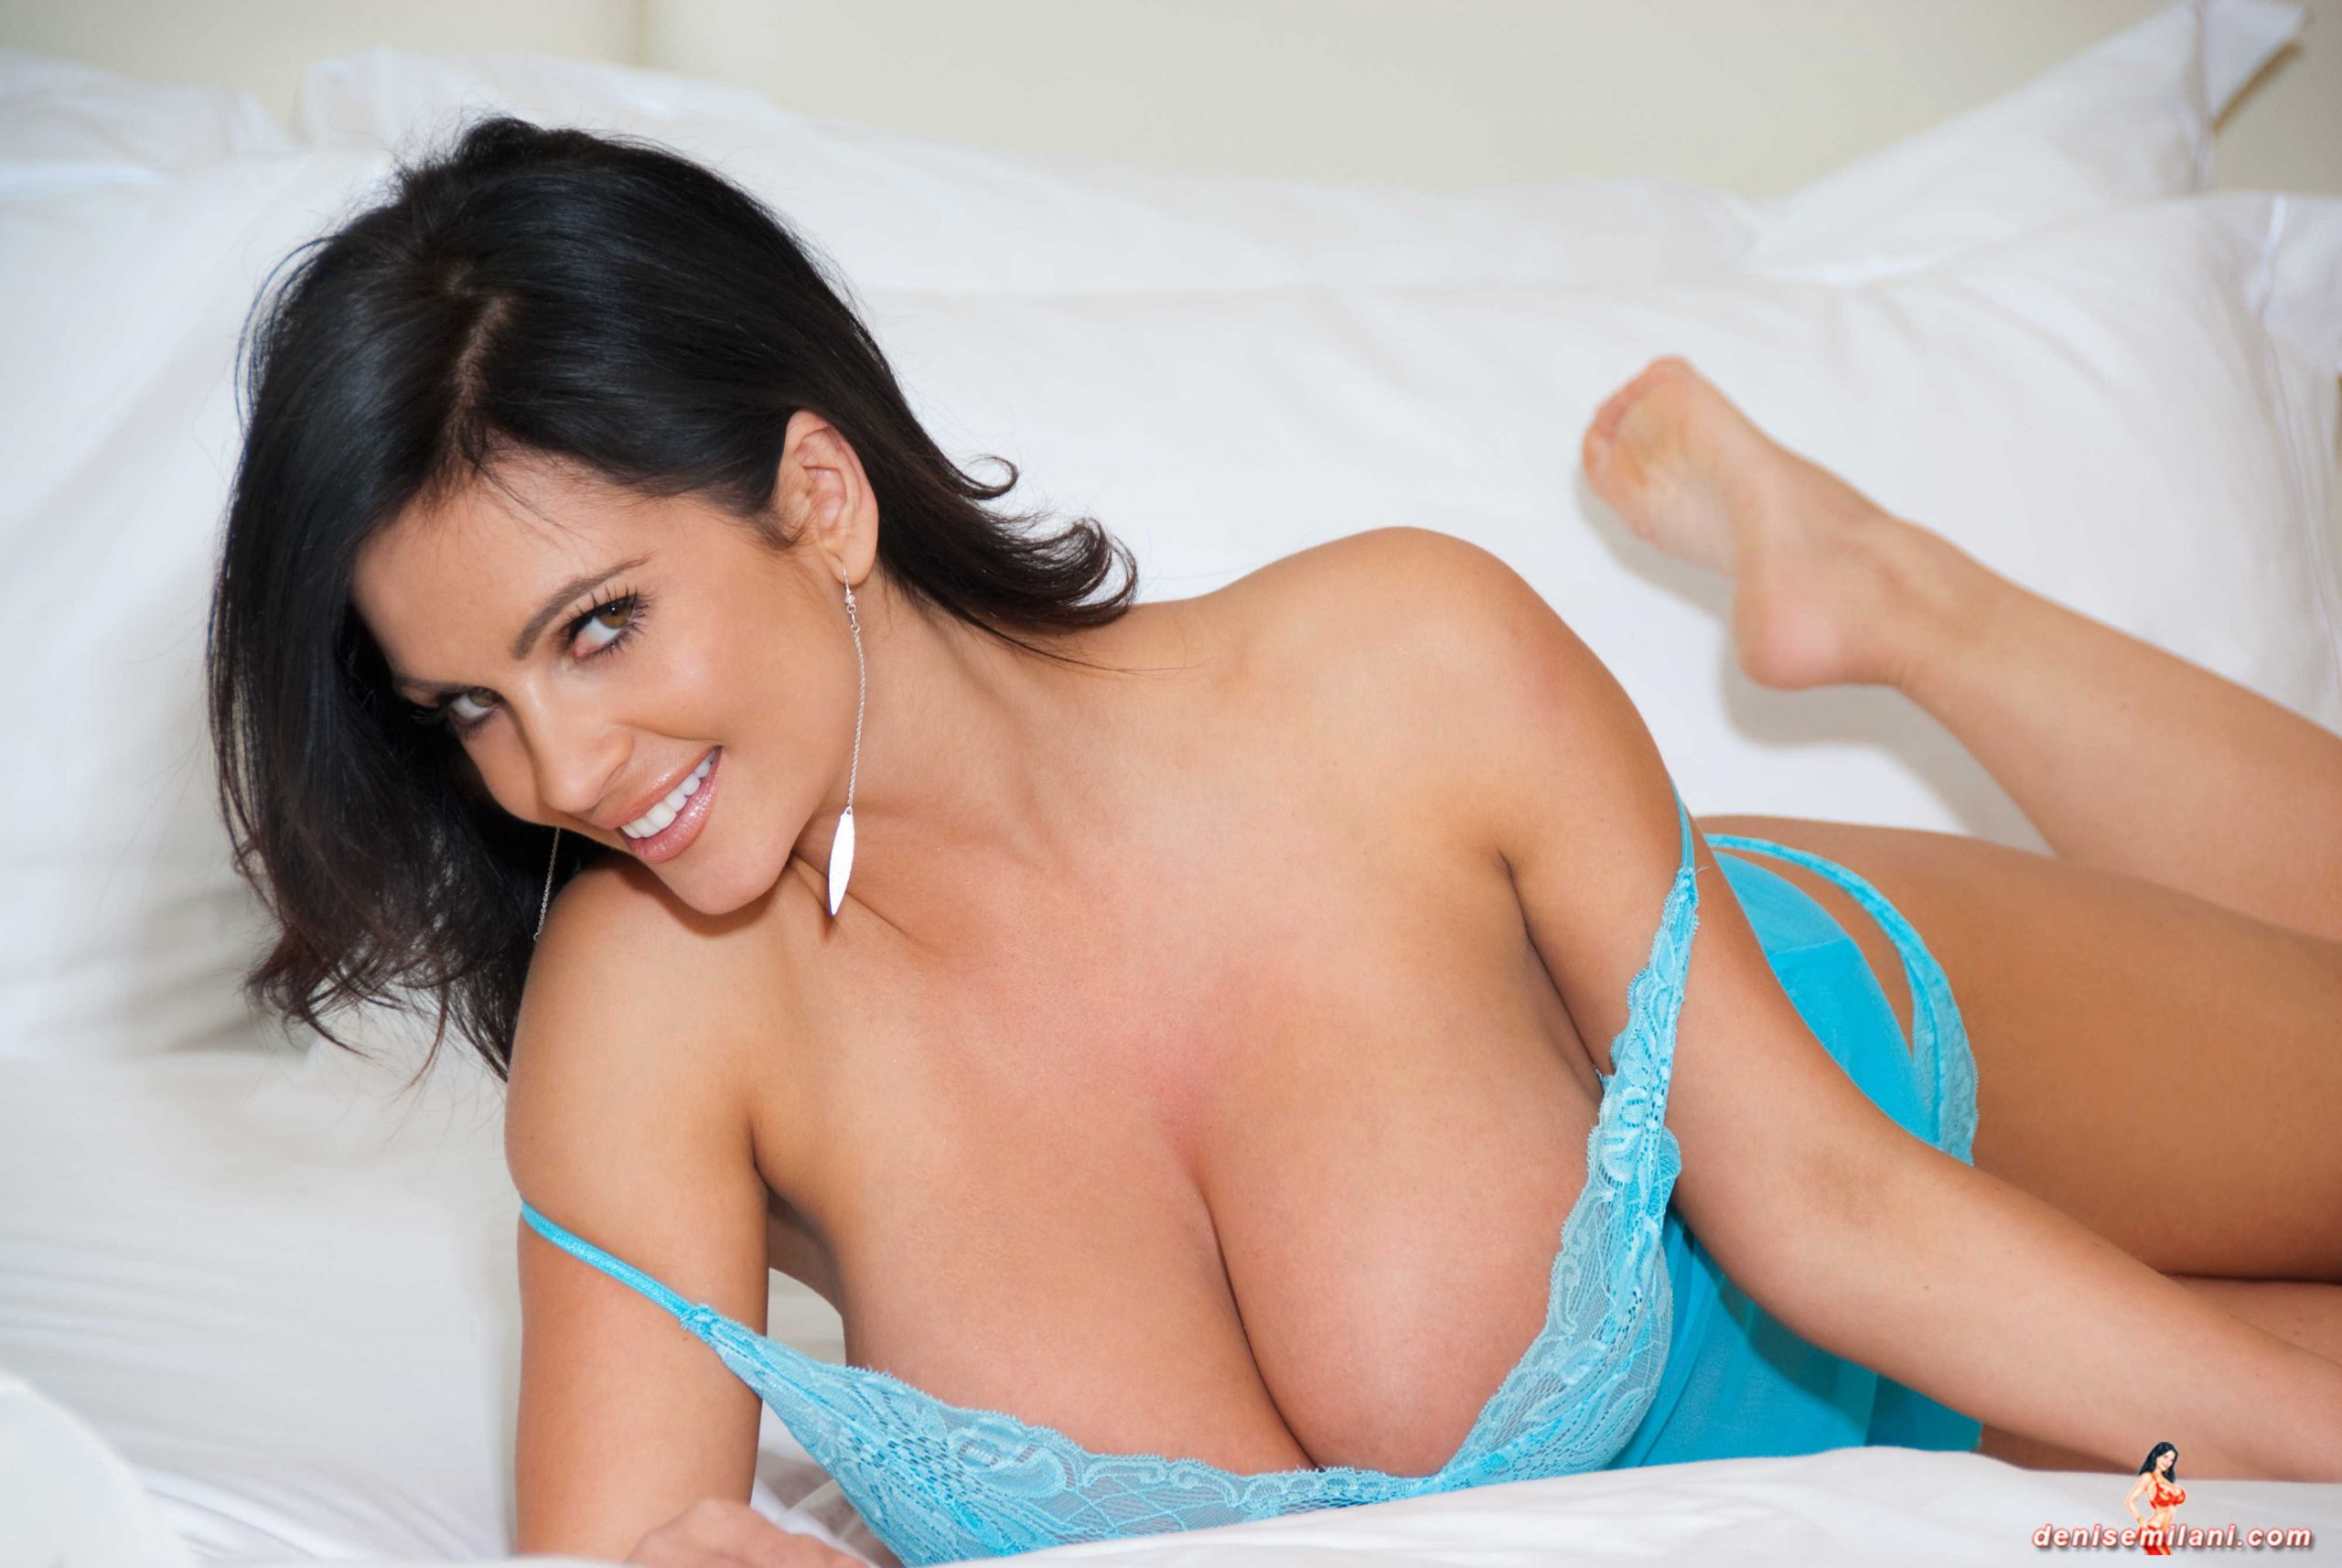 denise milani sexy pictures